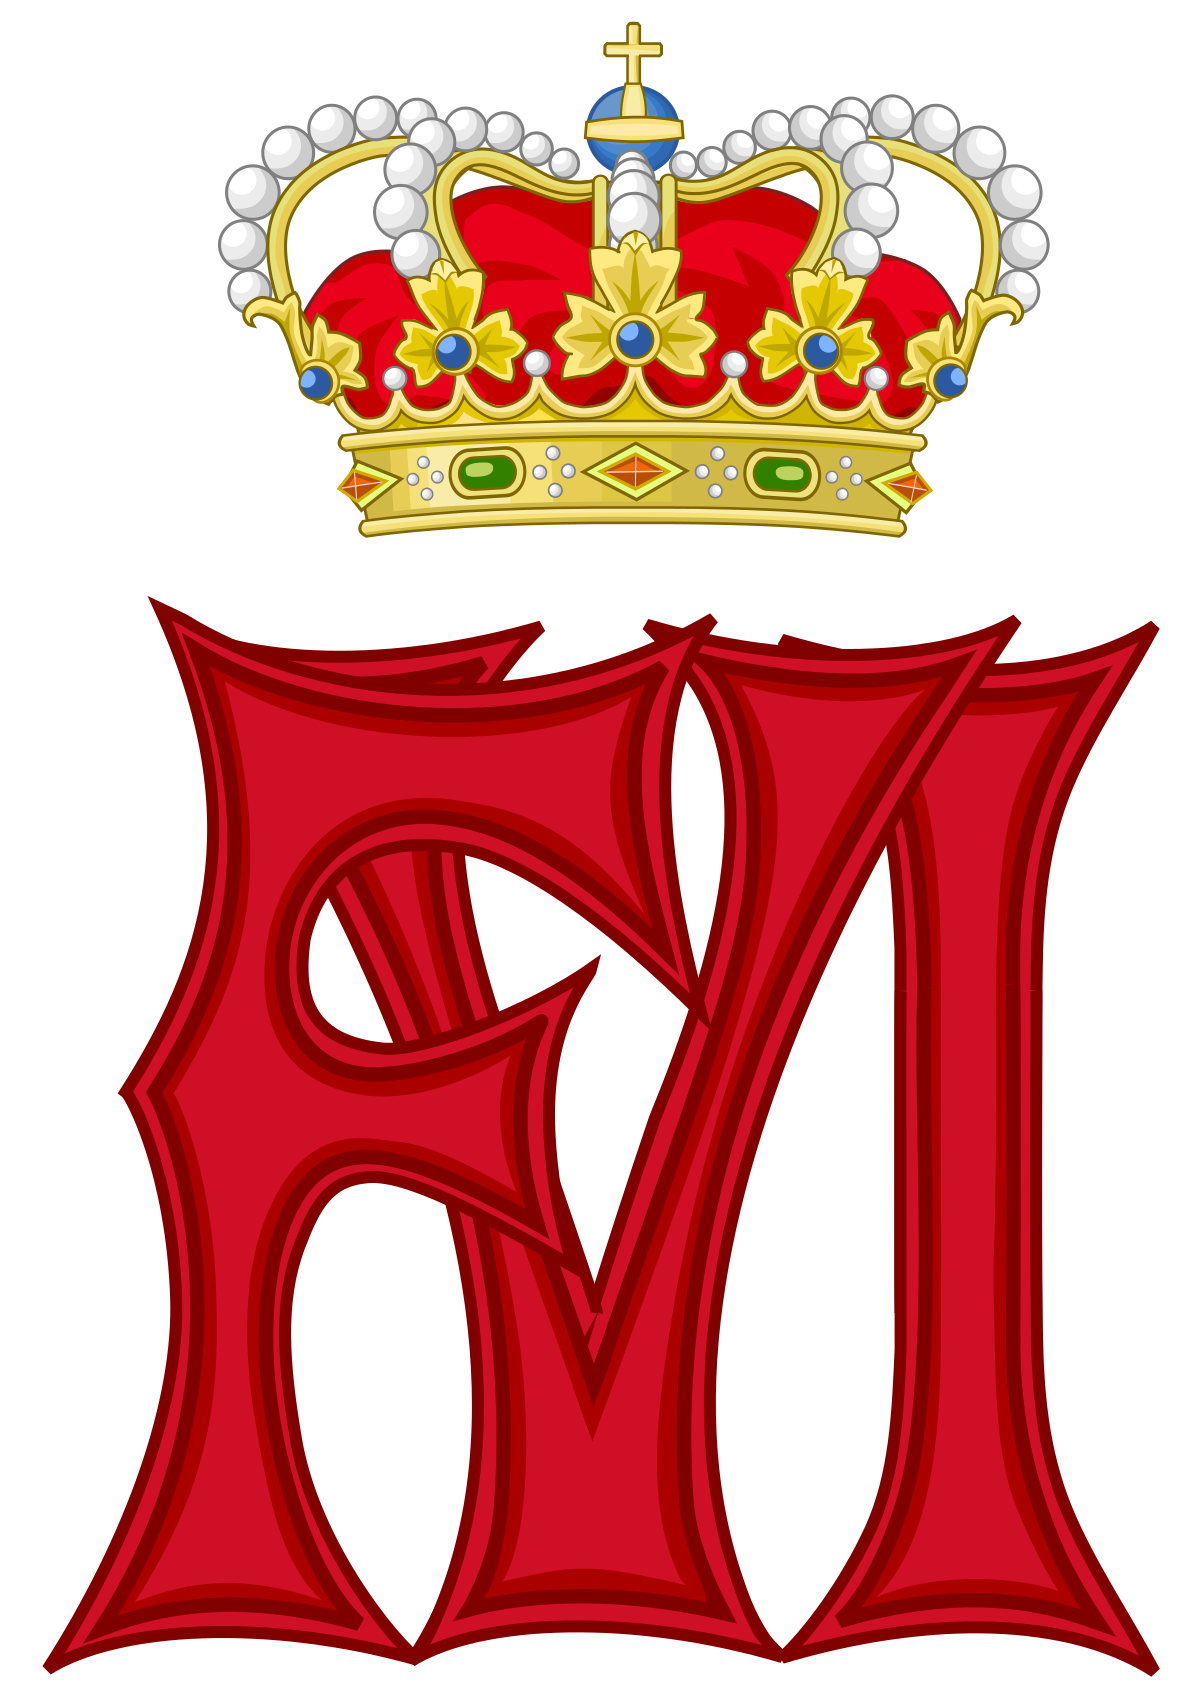 List of titles and honours of Felipe VI of Spain.